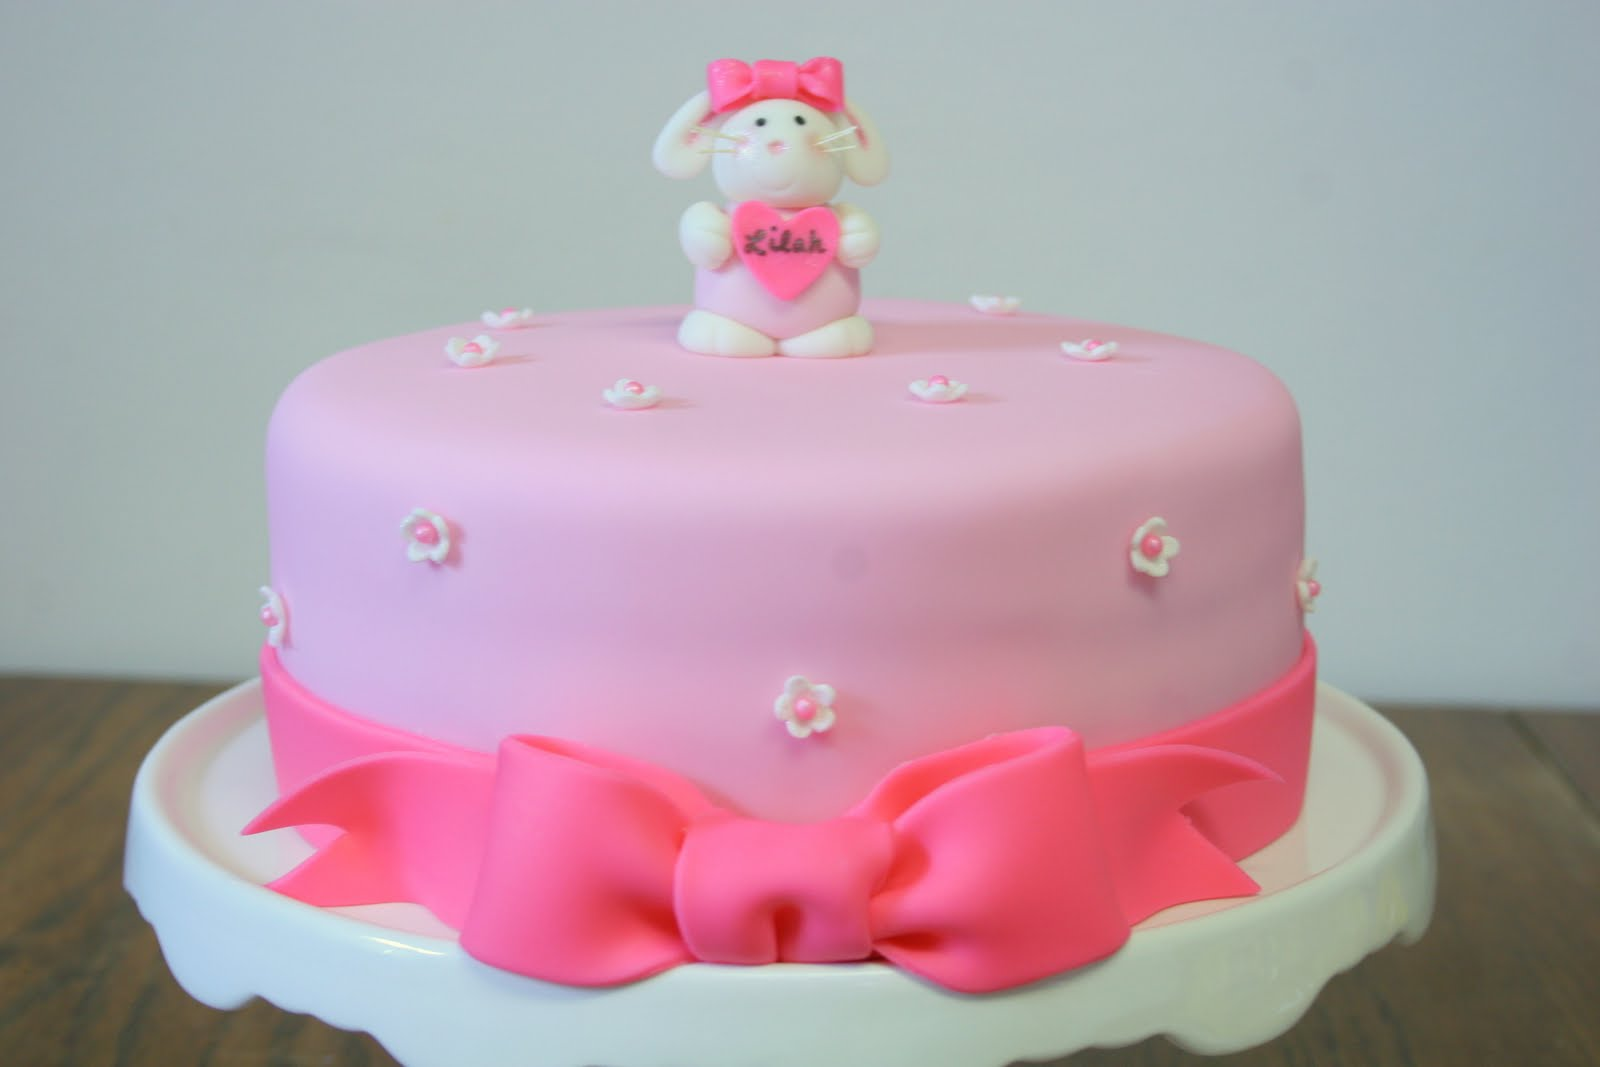 Baby Shower Cakes For Girls ~ Stuff by stace bunny rabbit girl s baby shower cake